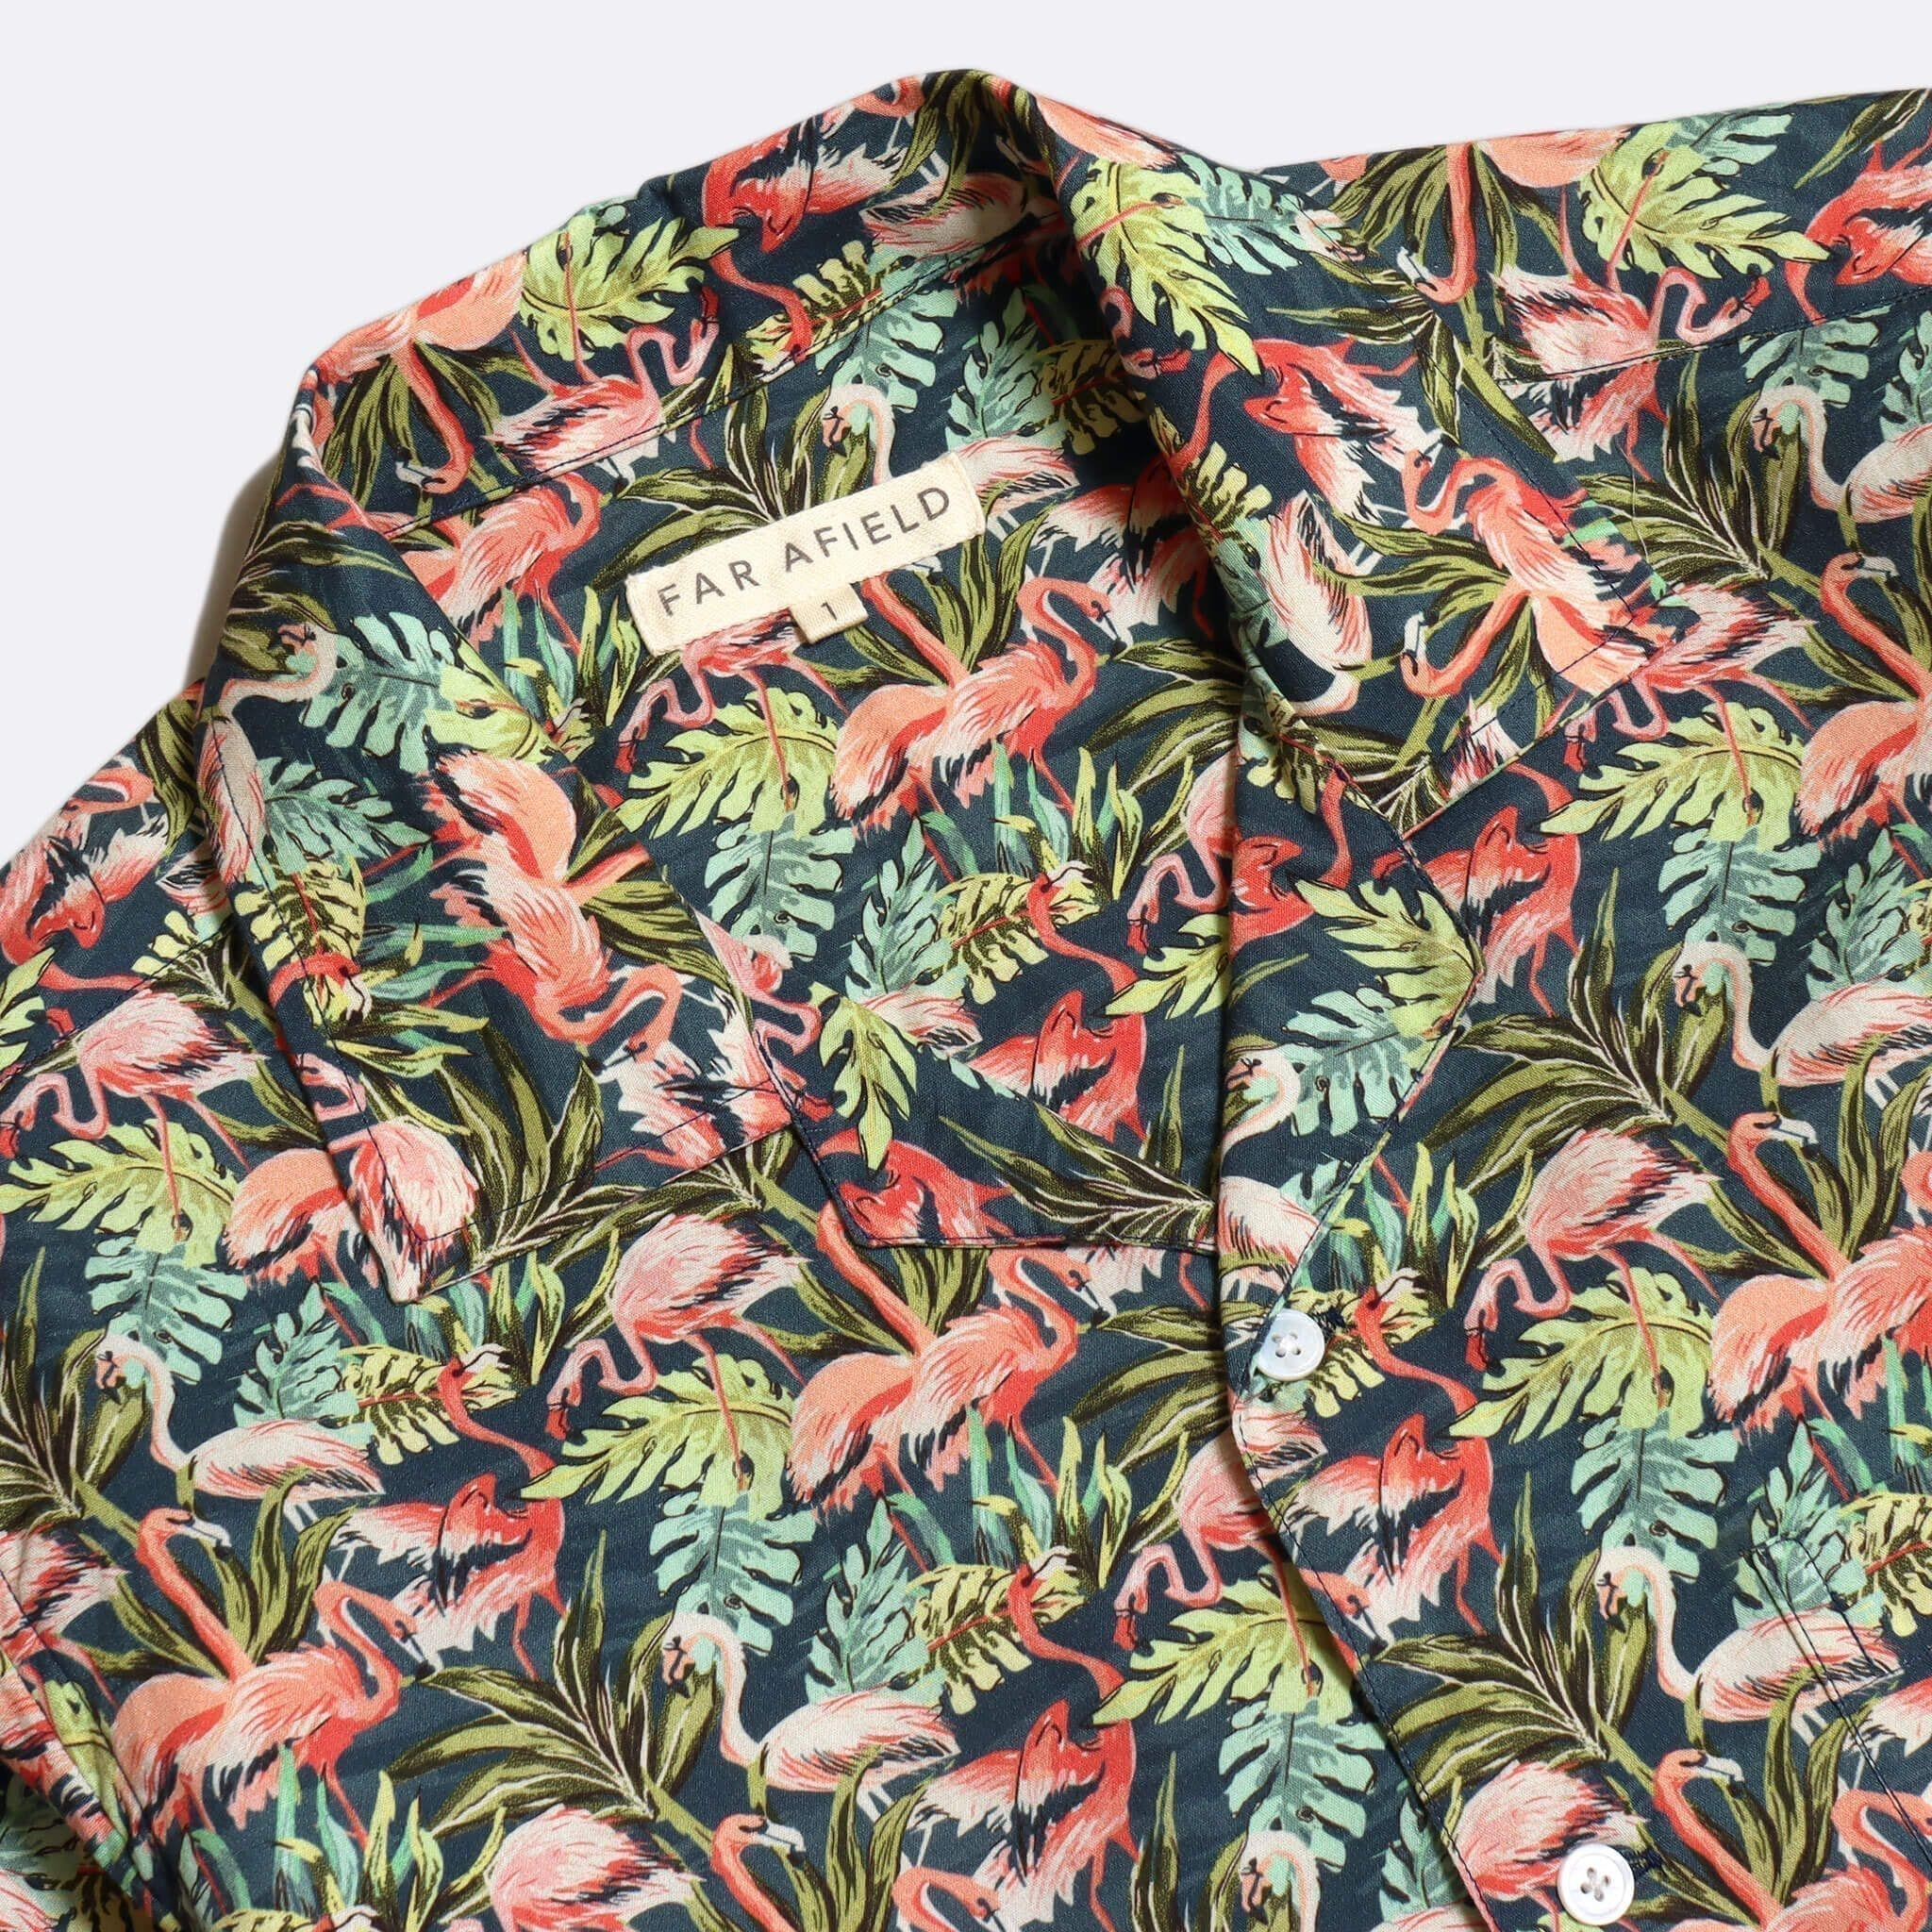 Far Afield Stachio Short Sleeve Shirt a Navy Cotton/Up-Cycled Fabric Hawaiian Bowling Style Smart Casual 2